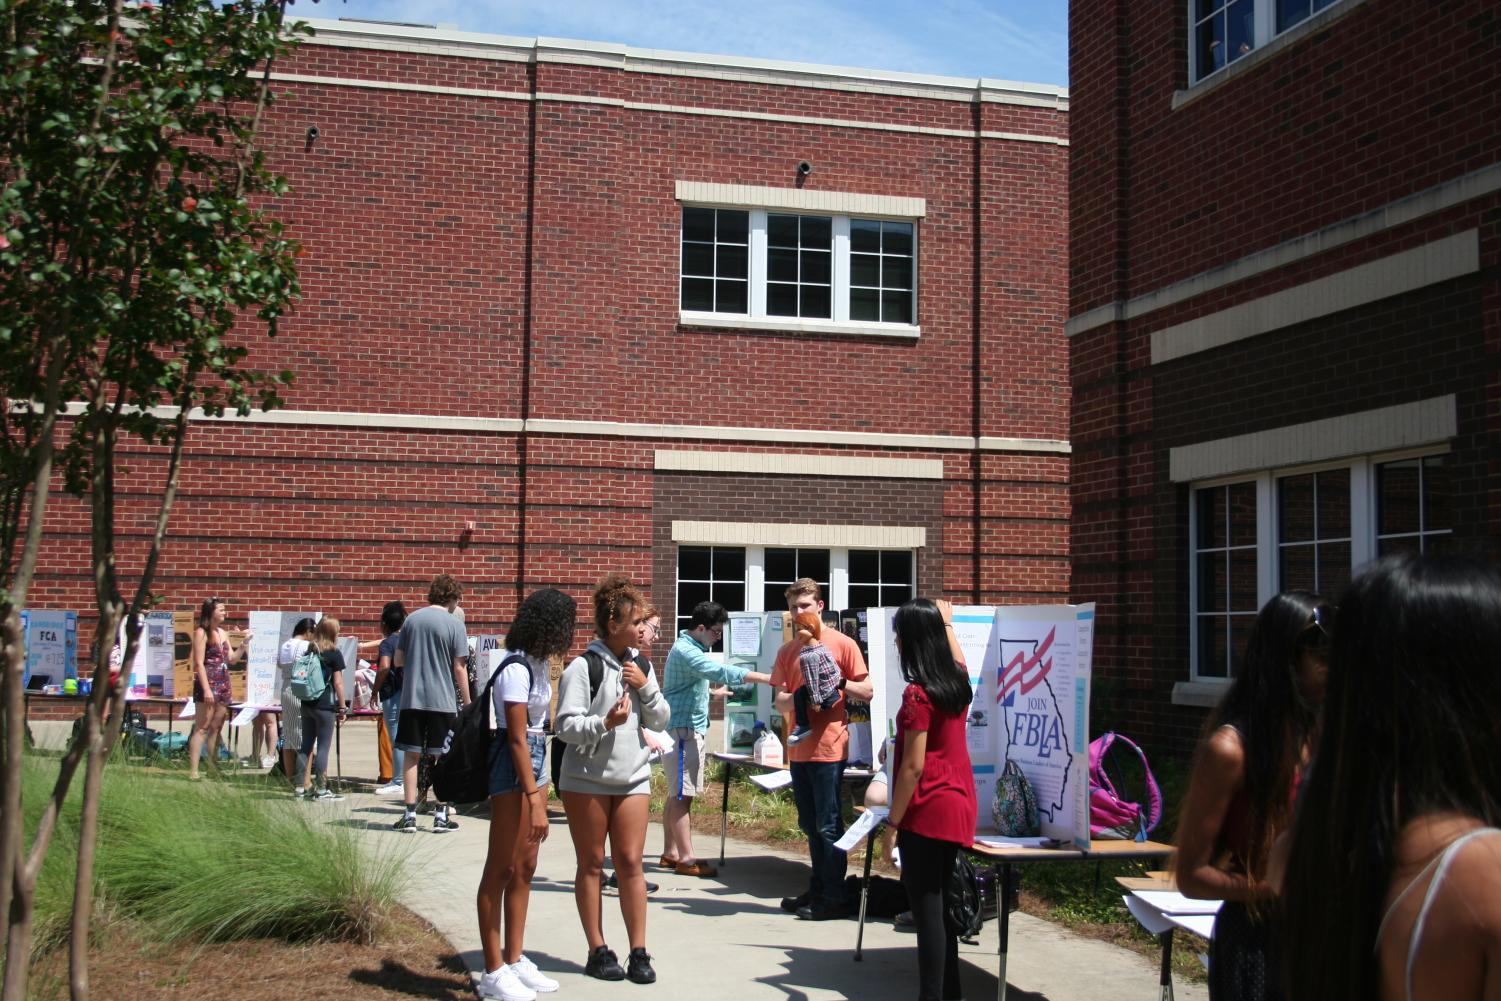 Students+browse+tables+at+the+club+fair.